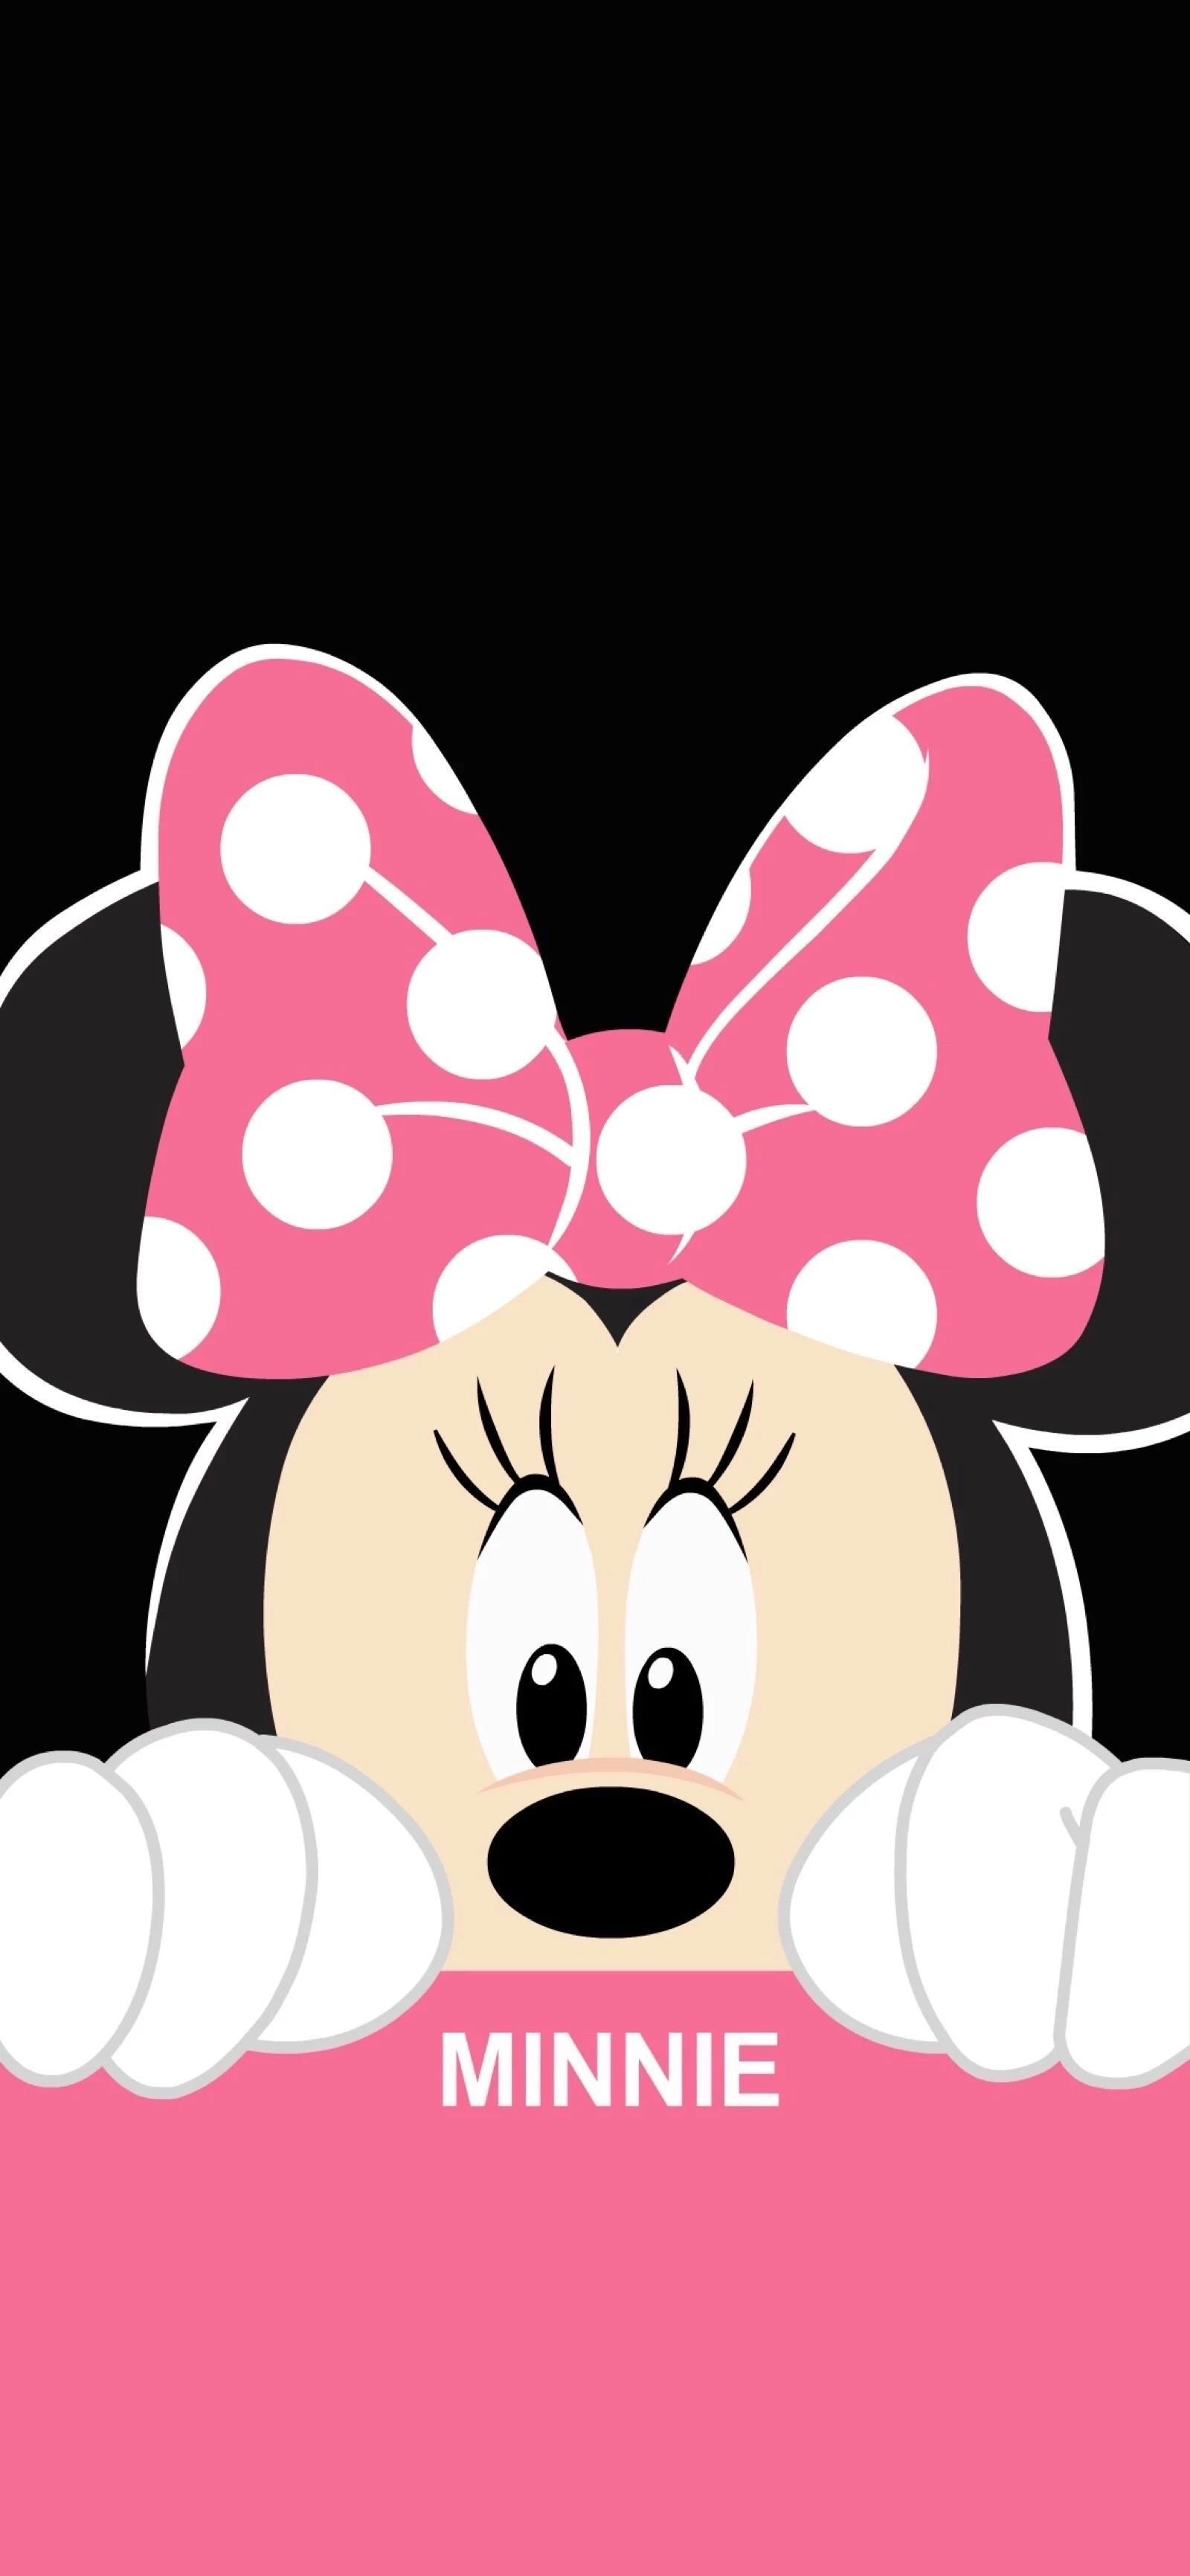 Imagenes De Mimi Mouse Wallpapers 86 Wallpapers Hd Wallpapers 360569513918233191 Mickey Mouse Wallpaper Minnie Mouse Pictures Minnie Mouse Images